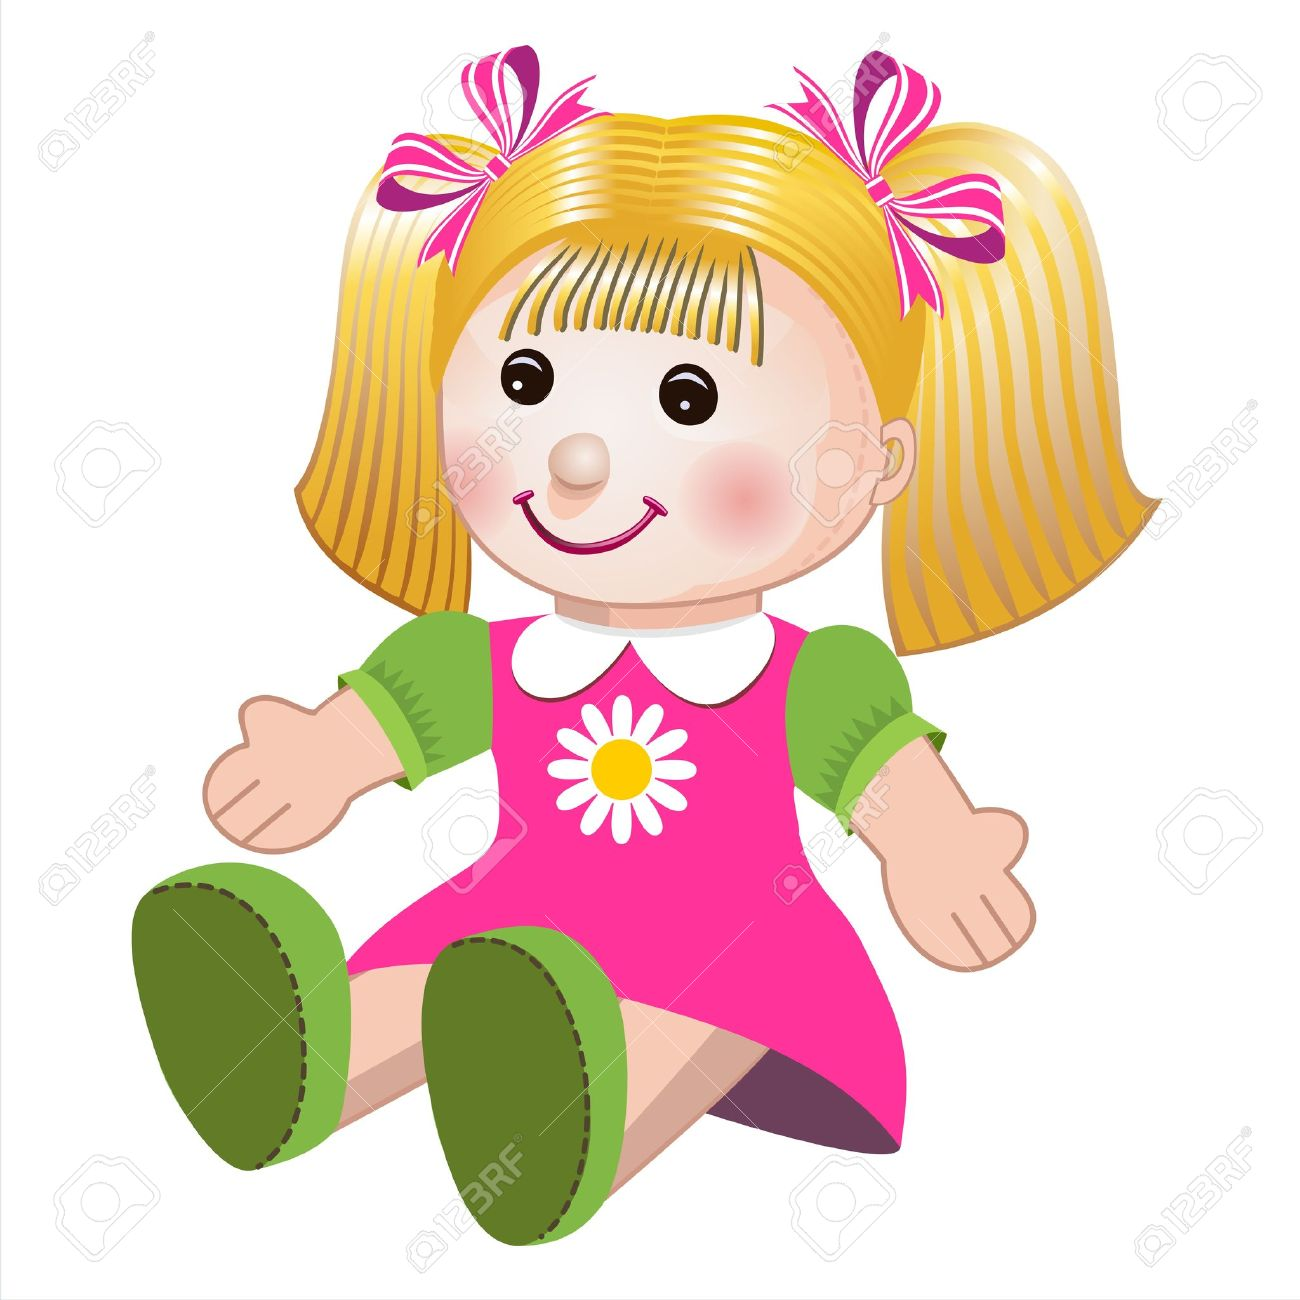 1300x1300 Doll Clipart Toy Doll